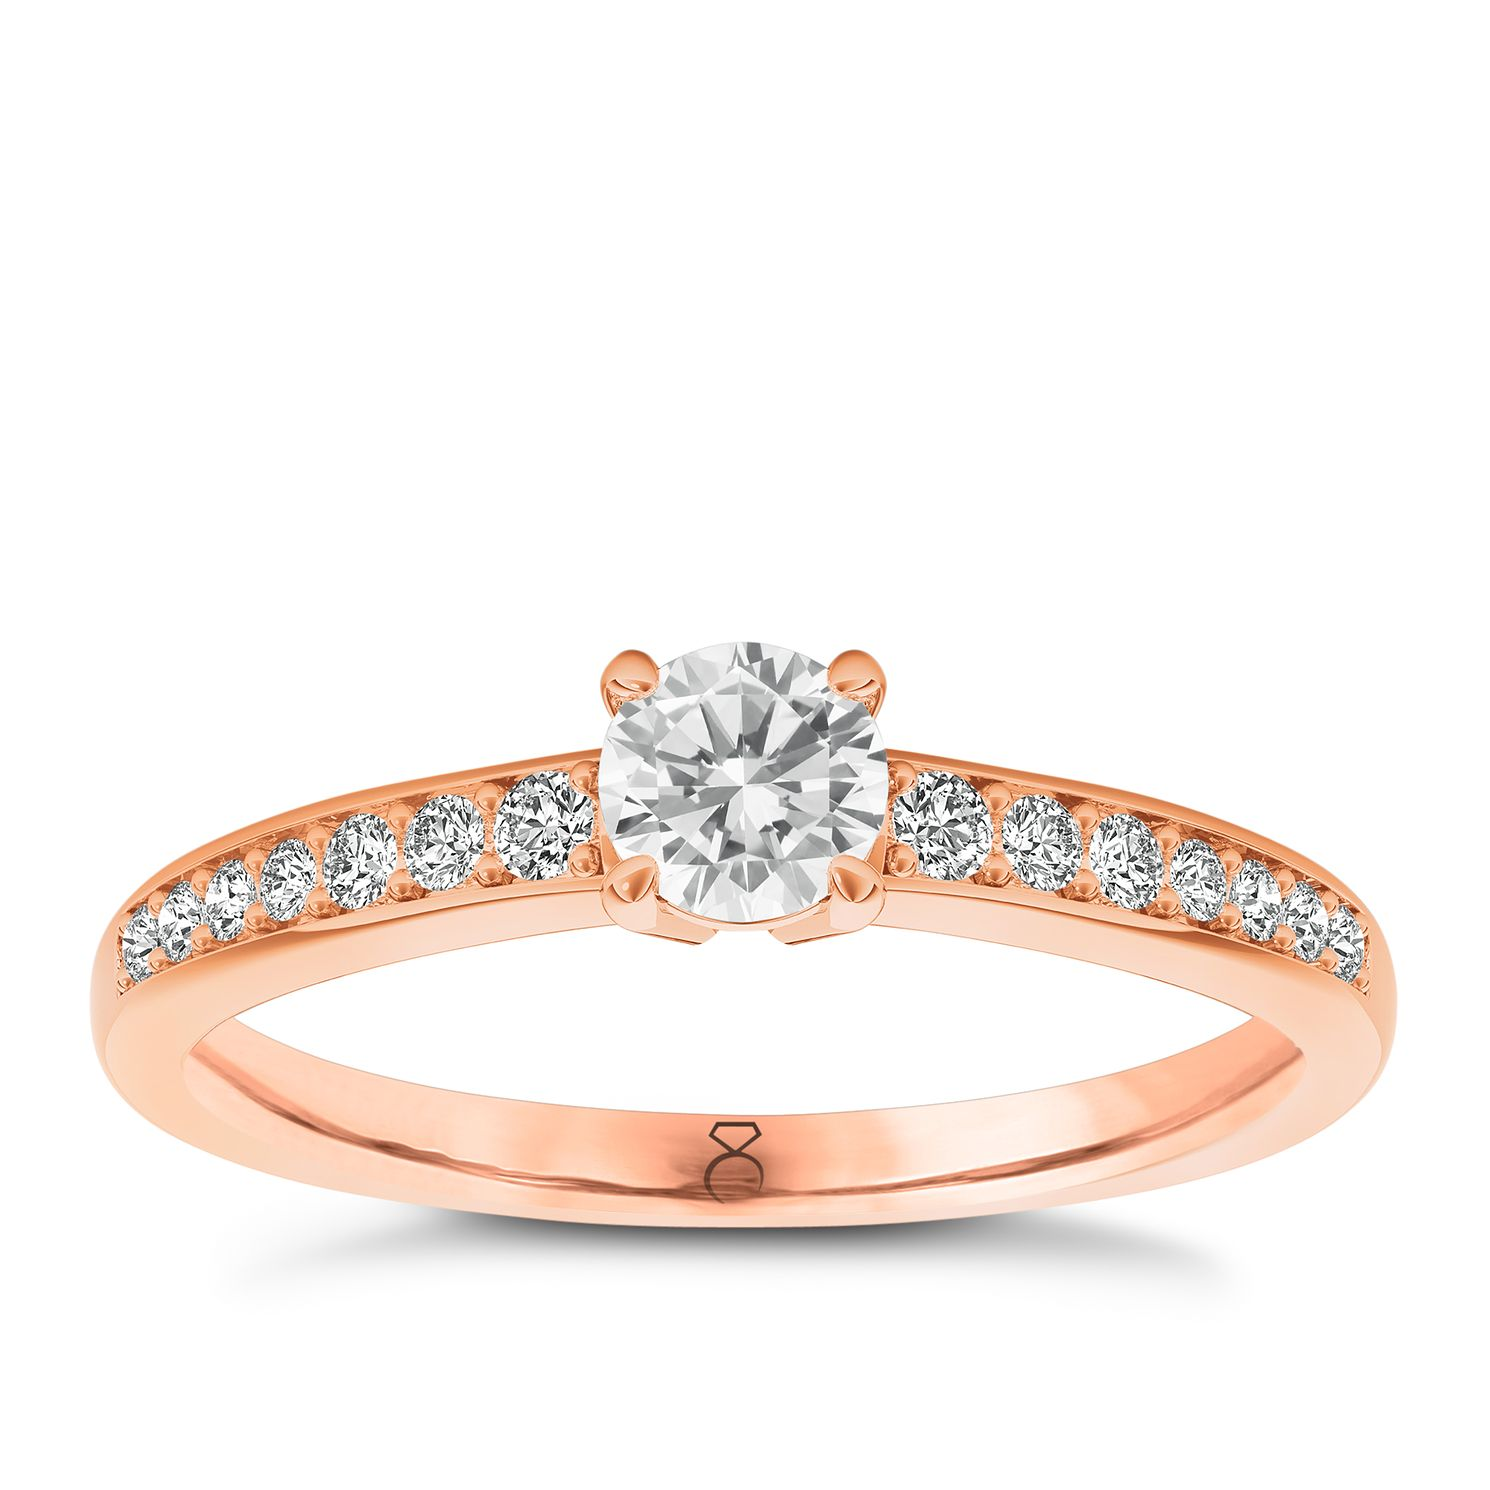 The Diamond Story 18ct Rose Gold 0.66ct Total Diamond Ring - Product number 3454134